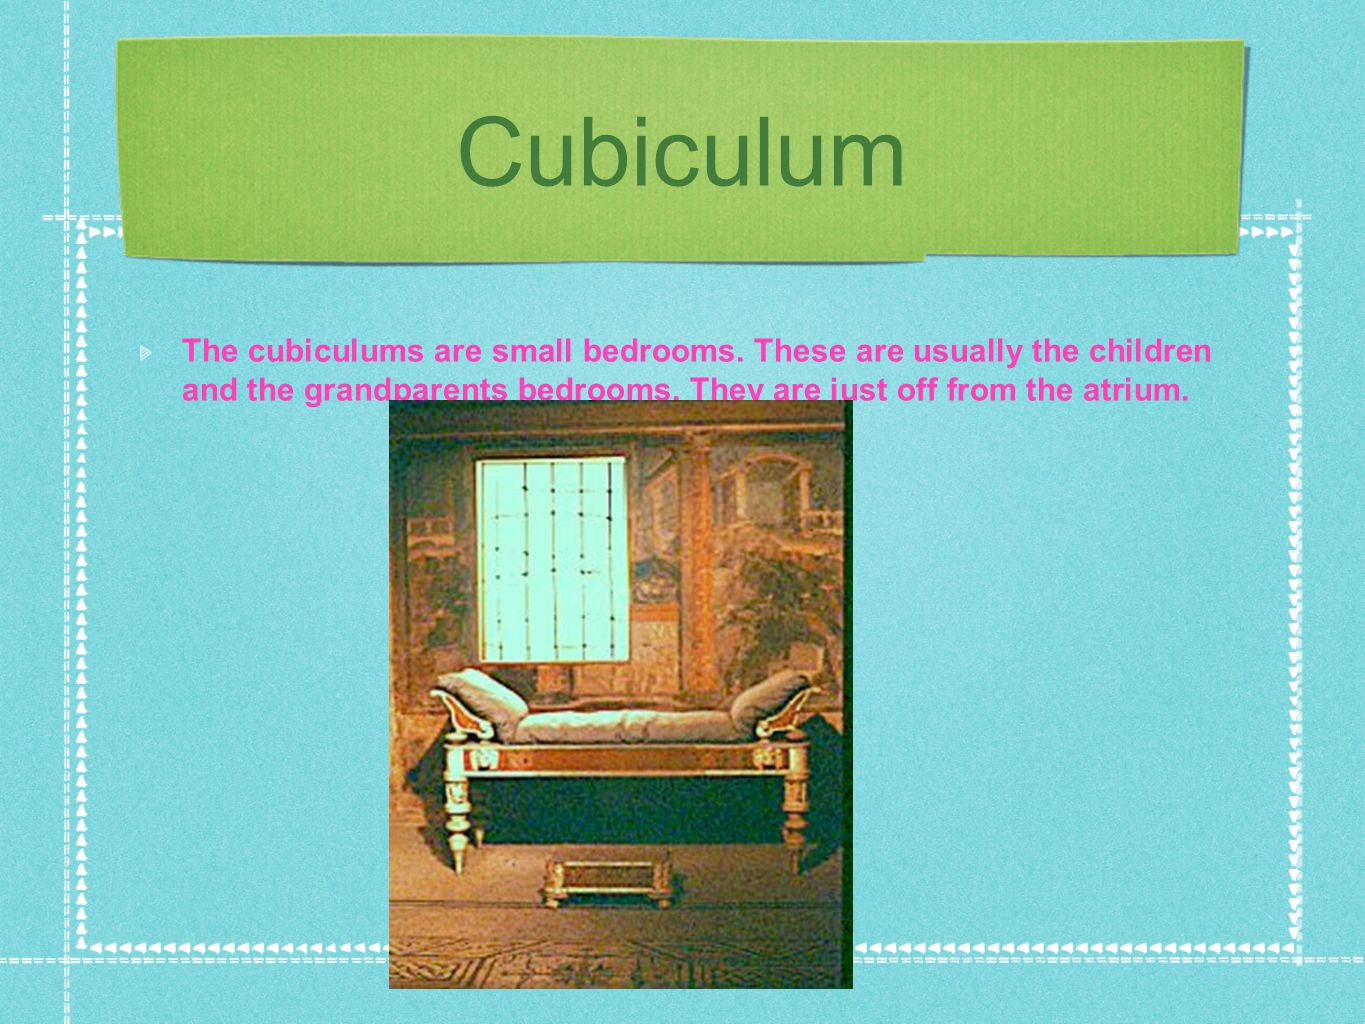 Cubiculum The cubiculums are small bedrooms.